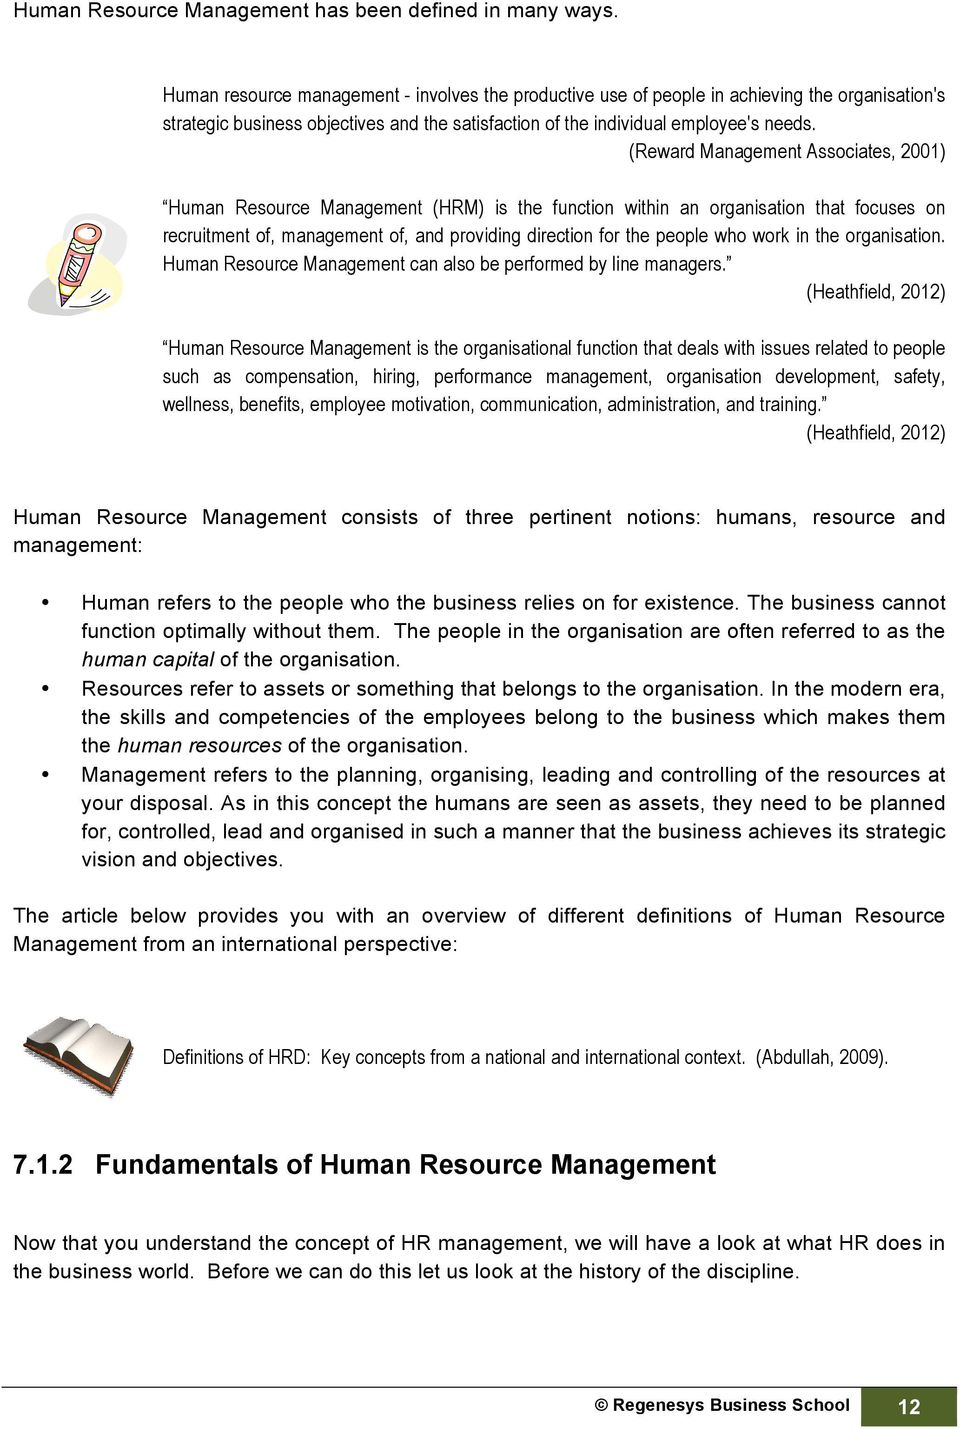 (Reward Management Associates, 2001) Human Resource Management (HRM) is the function within an organisation that focuses on recruitment of, management of, and providing direction for the people who